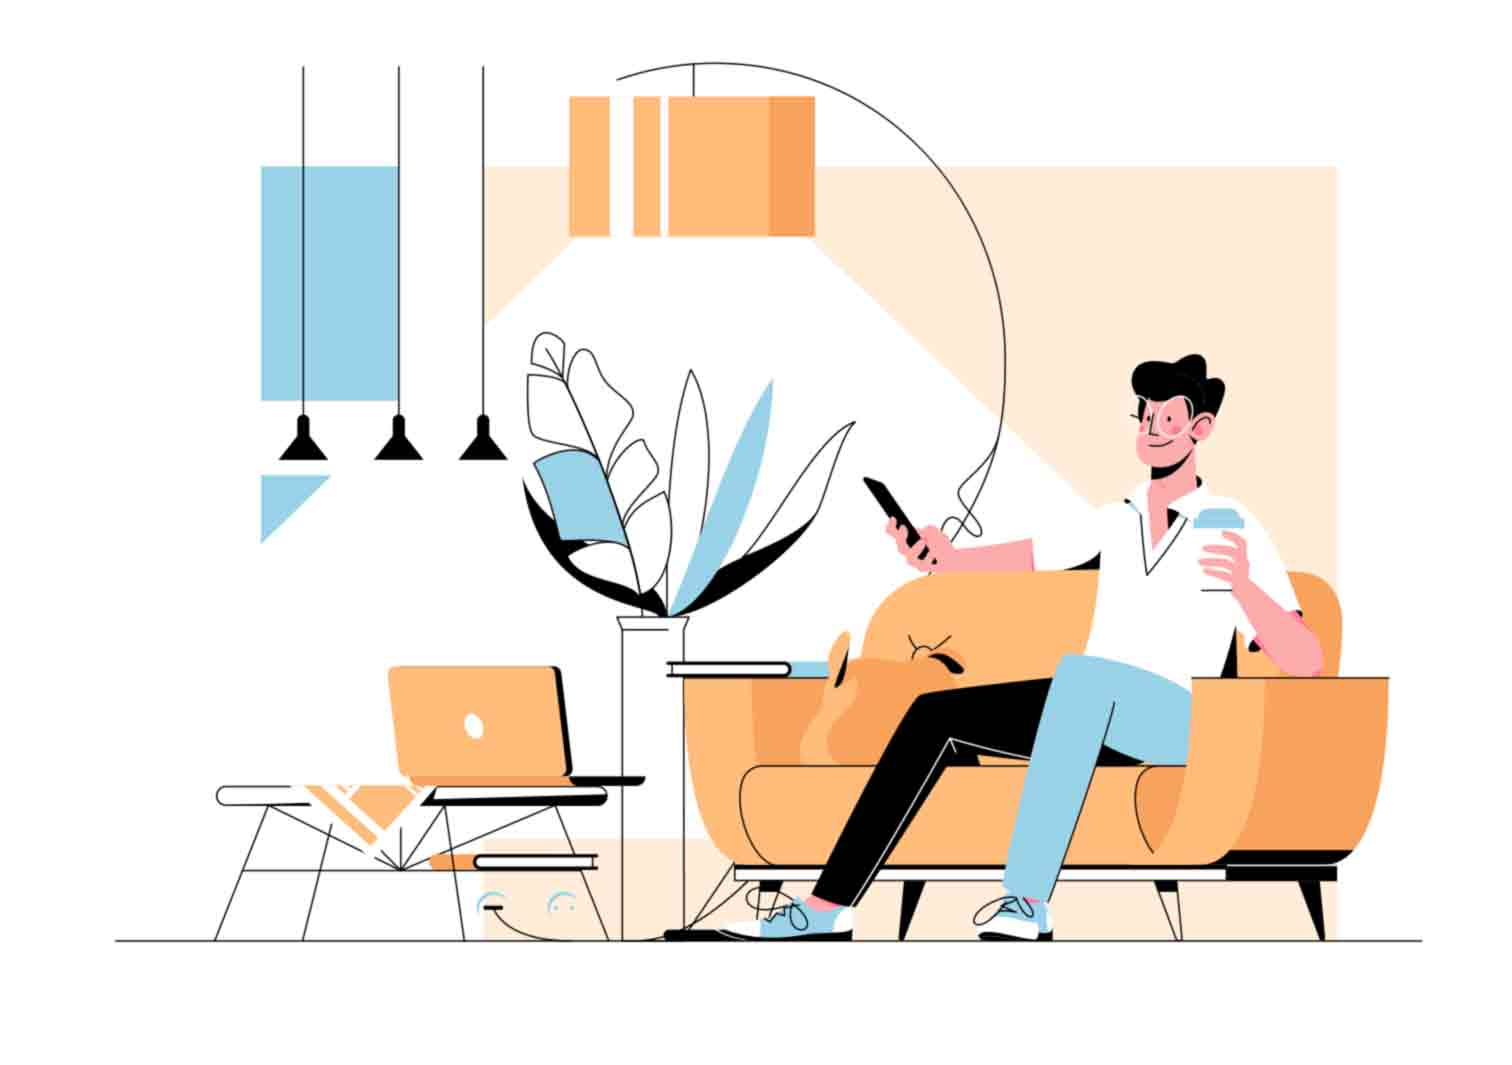 Unique, light and charismatic series of vector illustrations with variety of character designs. Exclusively on kit8.net